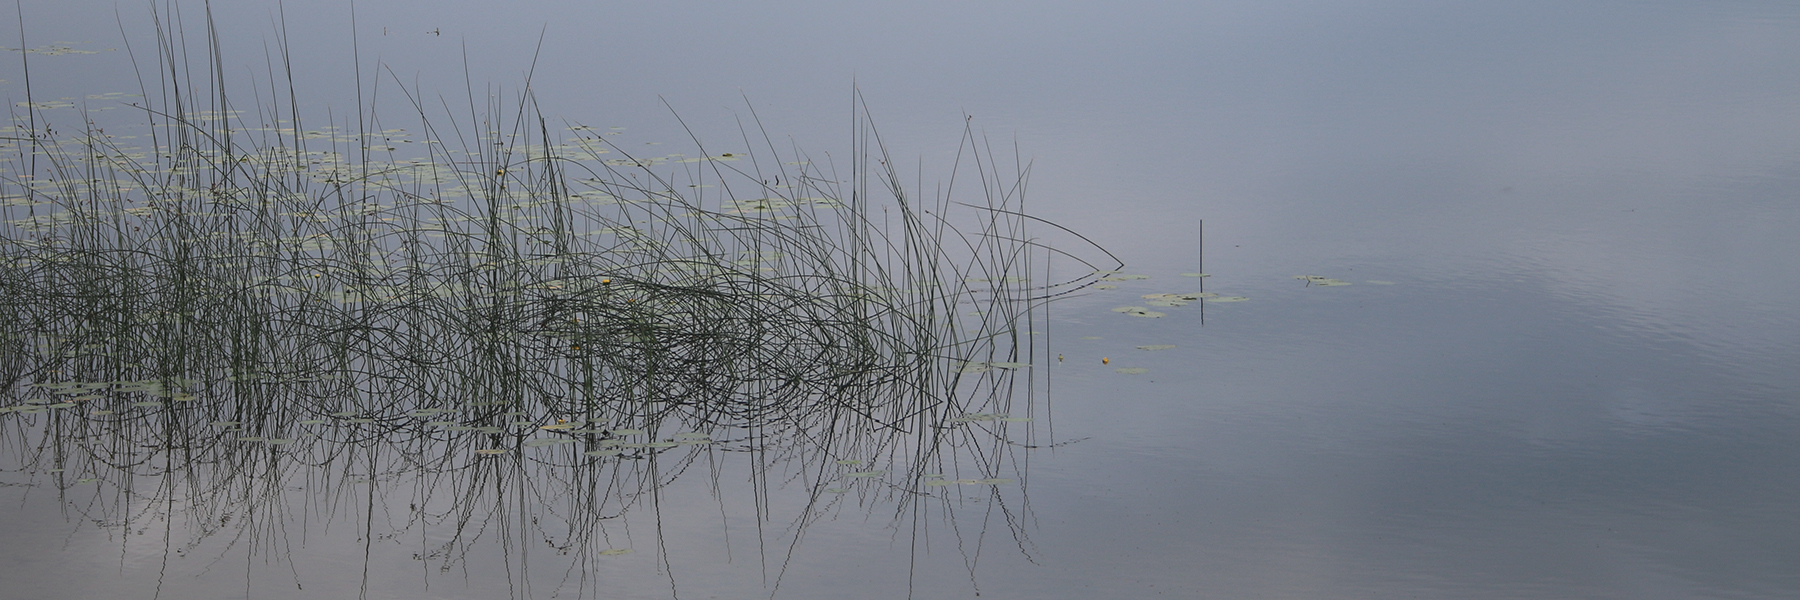 Reeds on a Lake